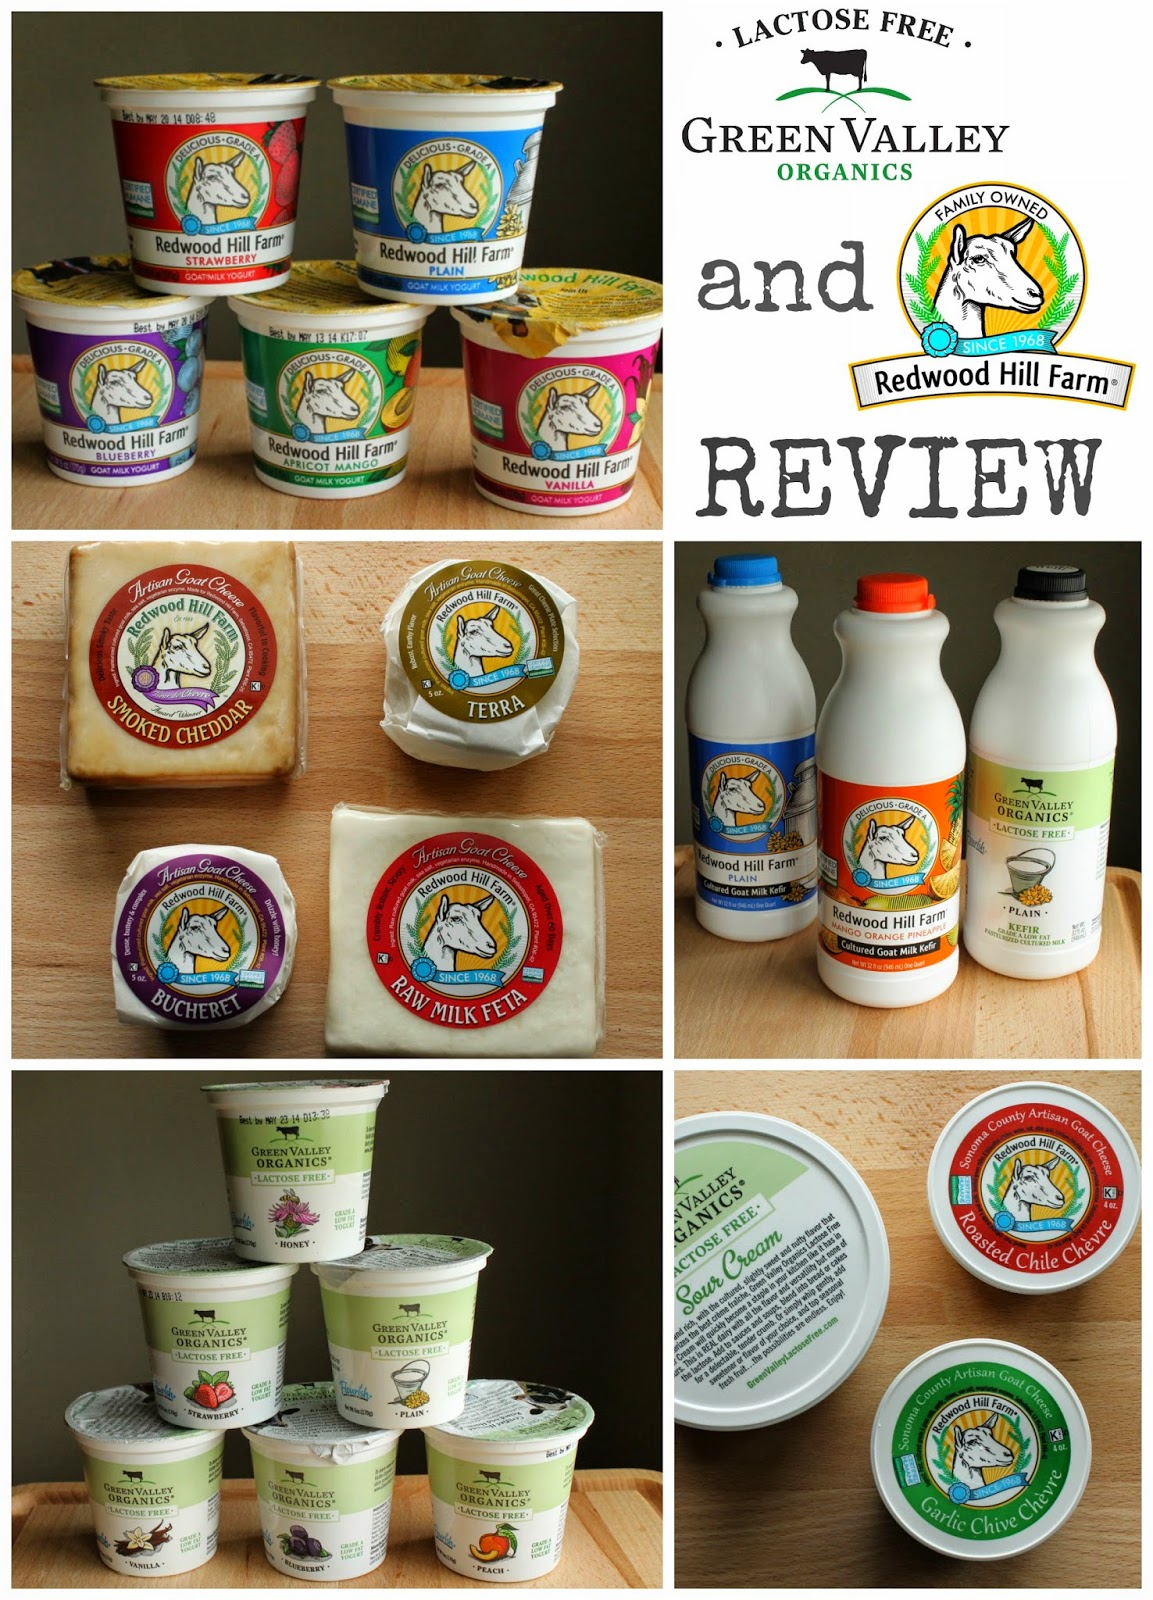 Redwood Hill Farm & Green Valley Organics Lactose Free REVIEW - www.mamabelly.com